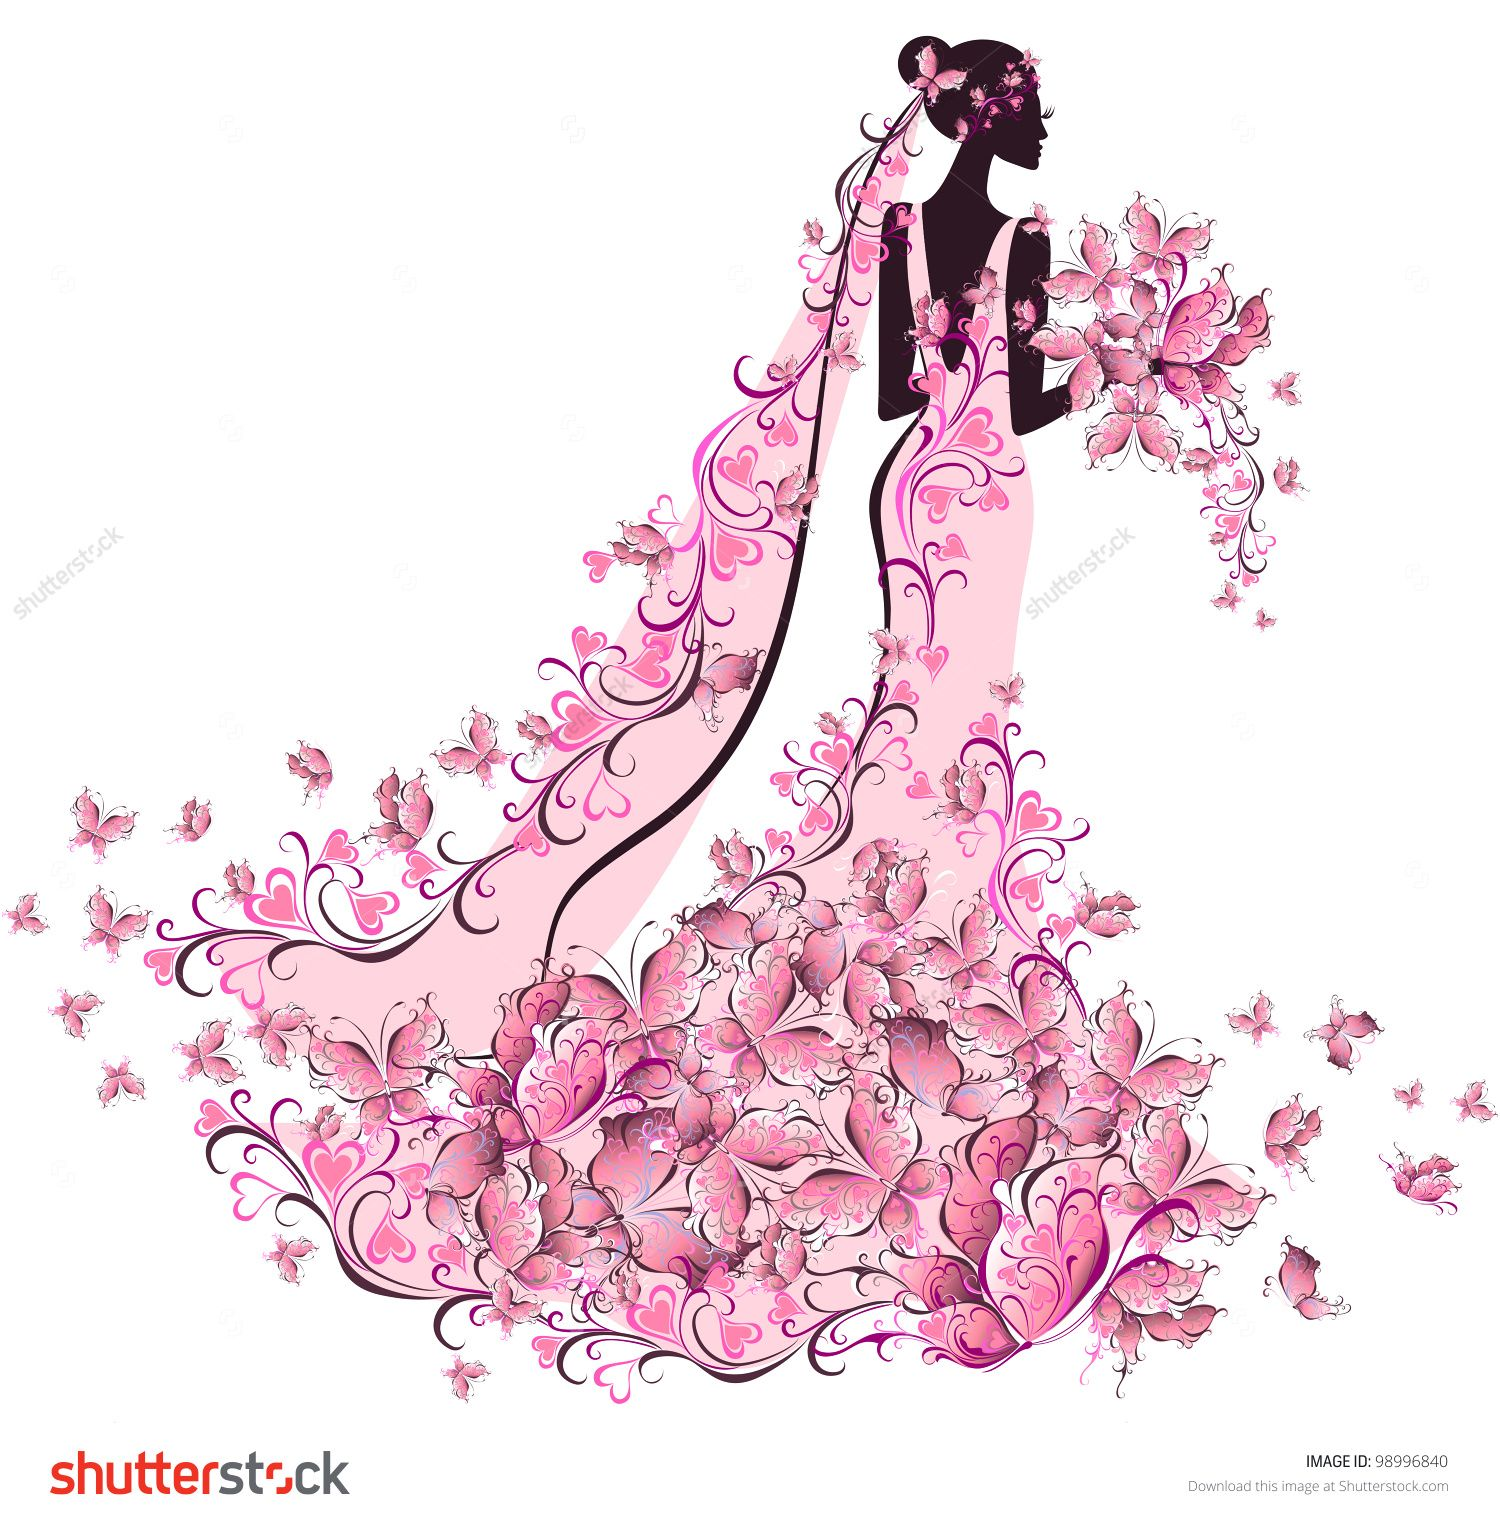 Bride in floral dress with butterfly | تصميم ازياء | Pinterest ...